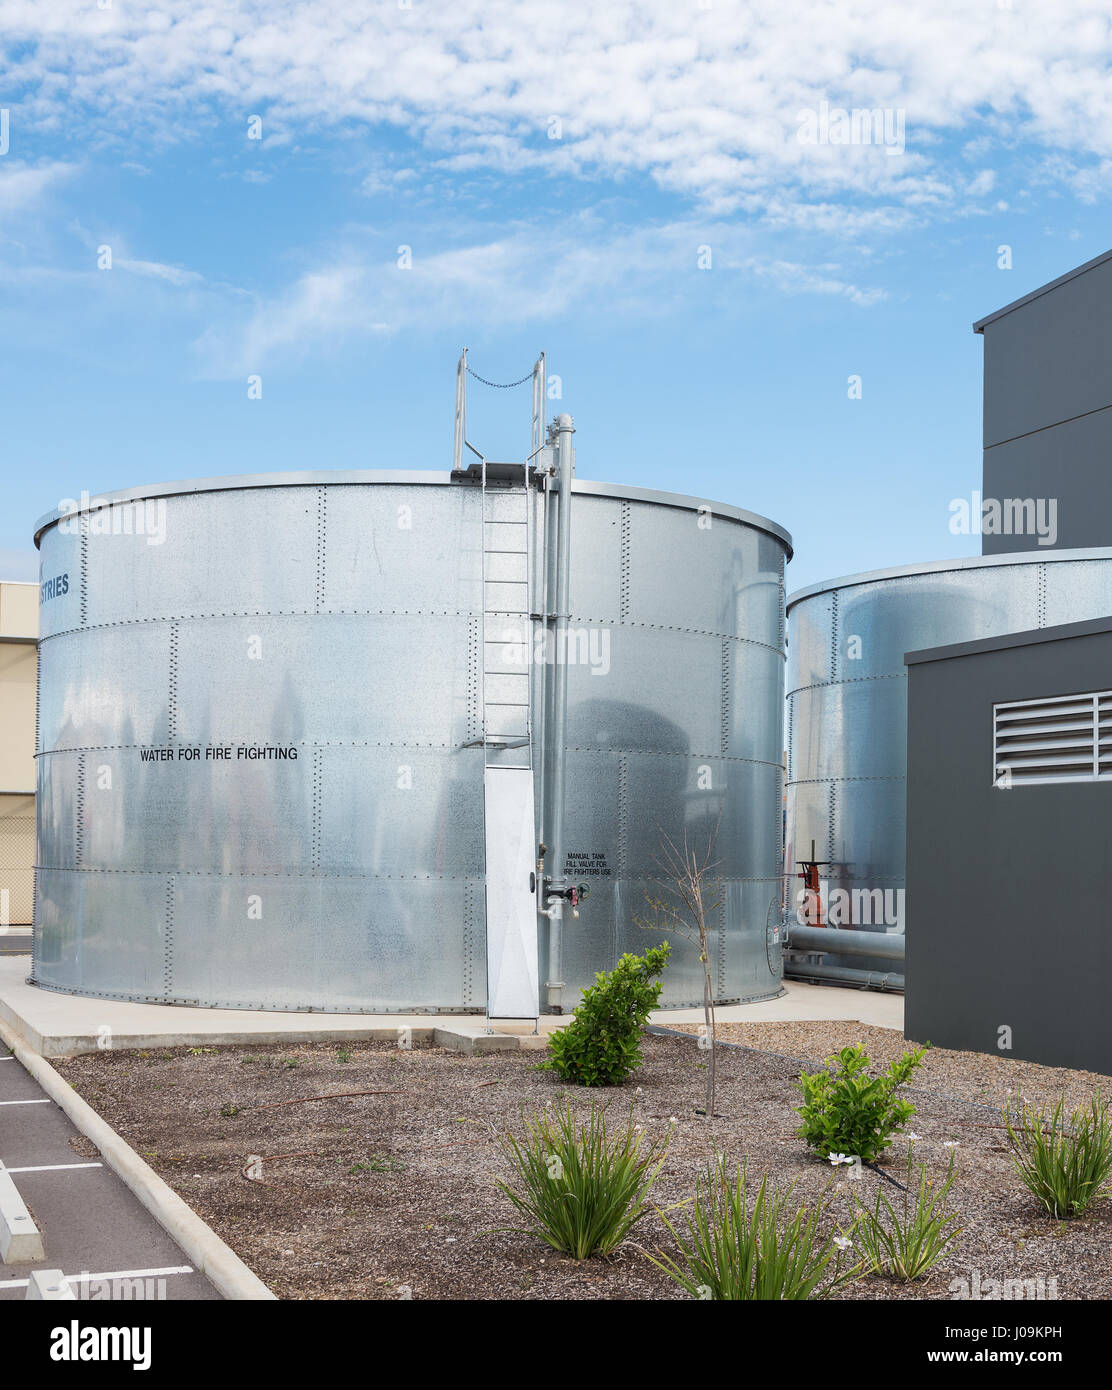 industrial water tank for fire fighting - Stock Image